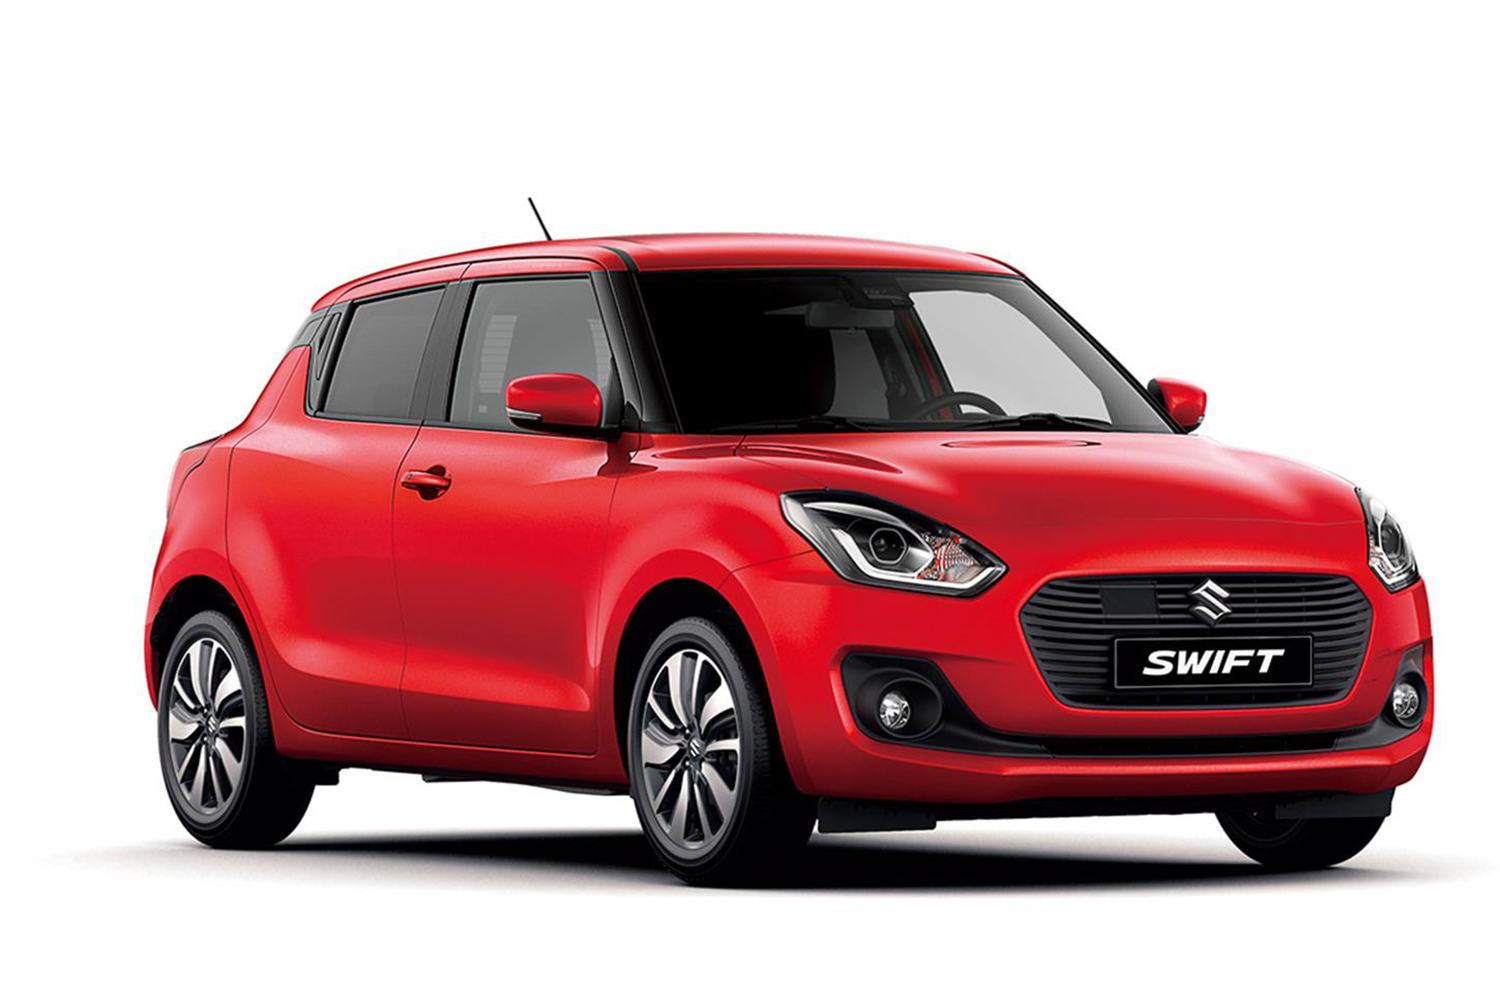 Suzuki swift photo - 7